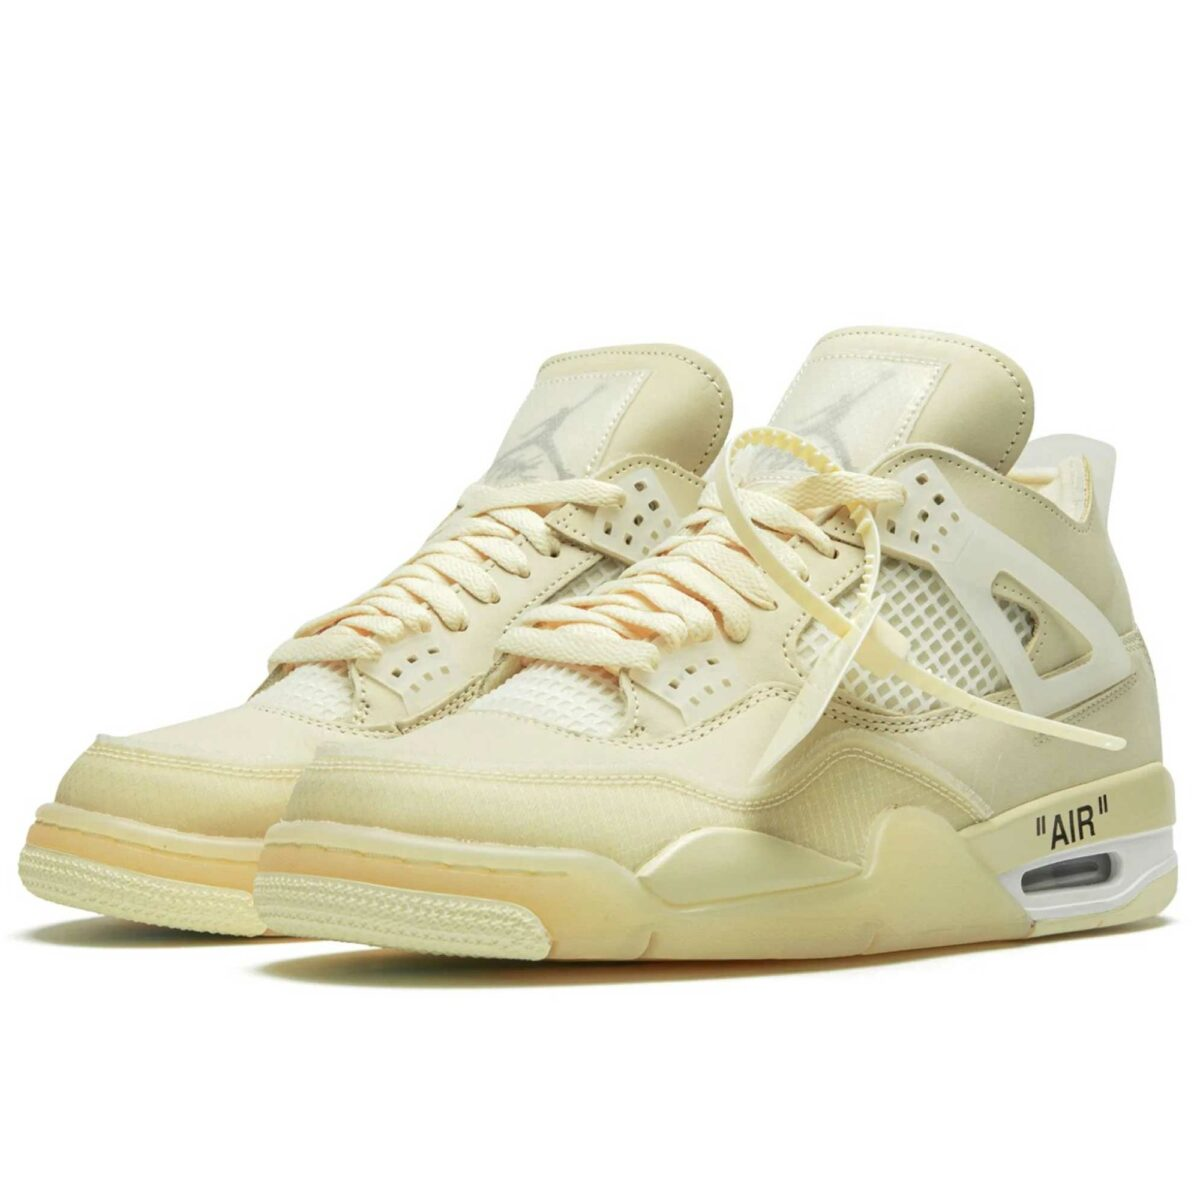 nike x off white air Jordan 4 retro sp CV9388_100 купить